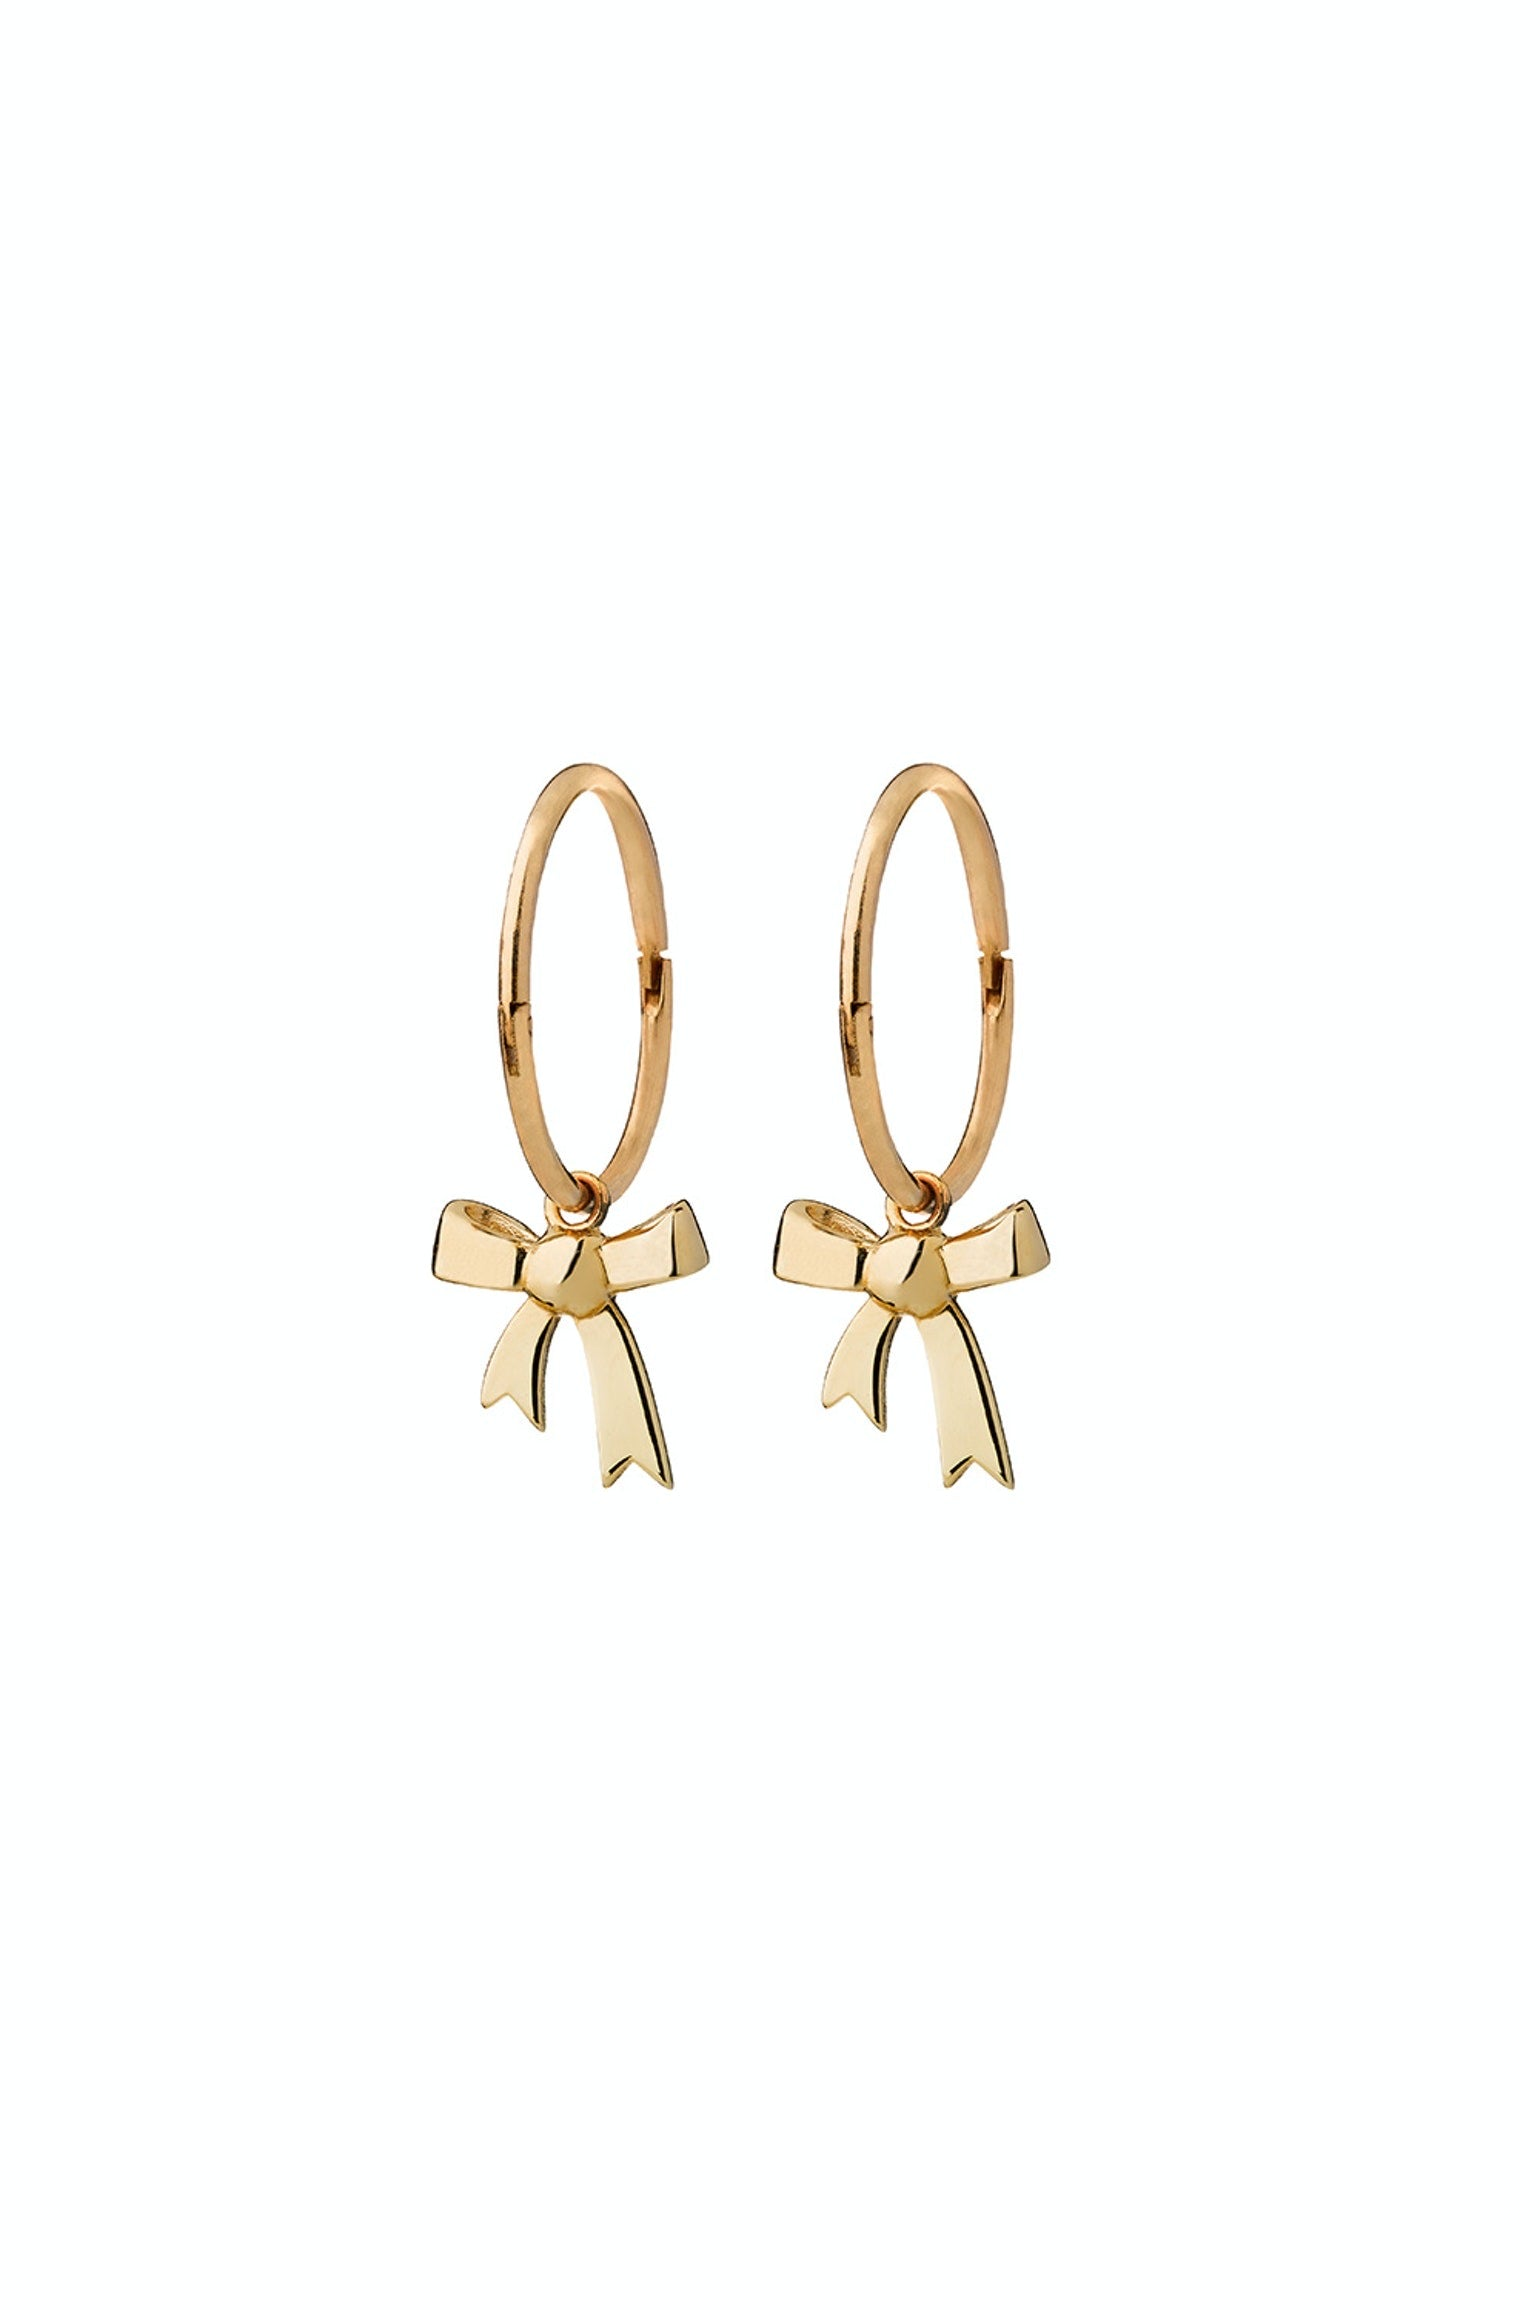 Bow Sleeper 9 c gold Karen Walker